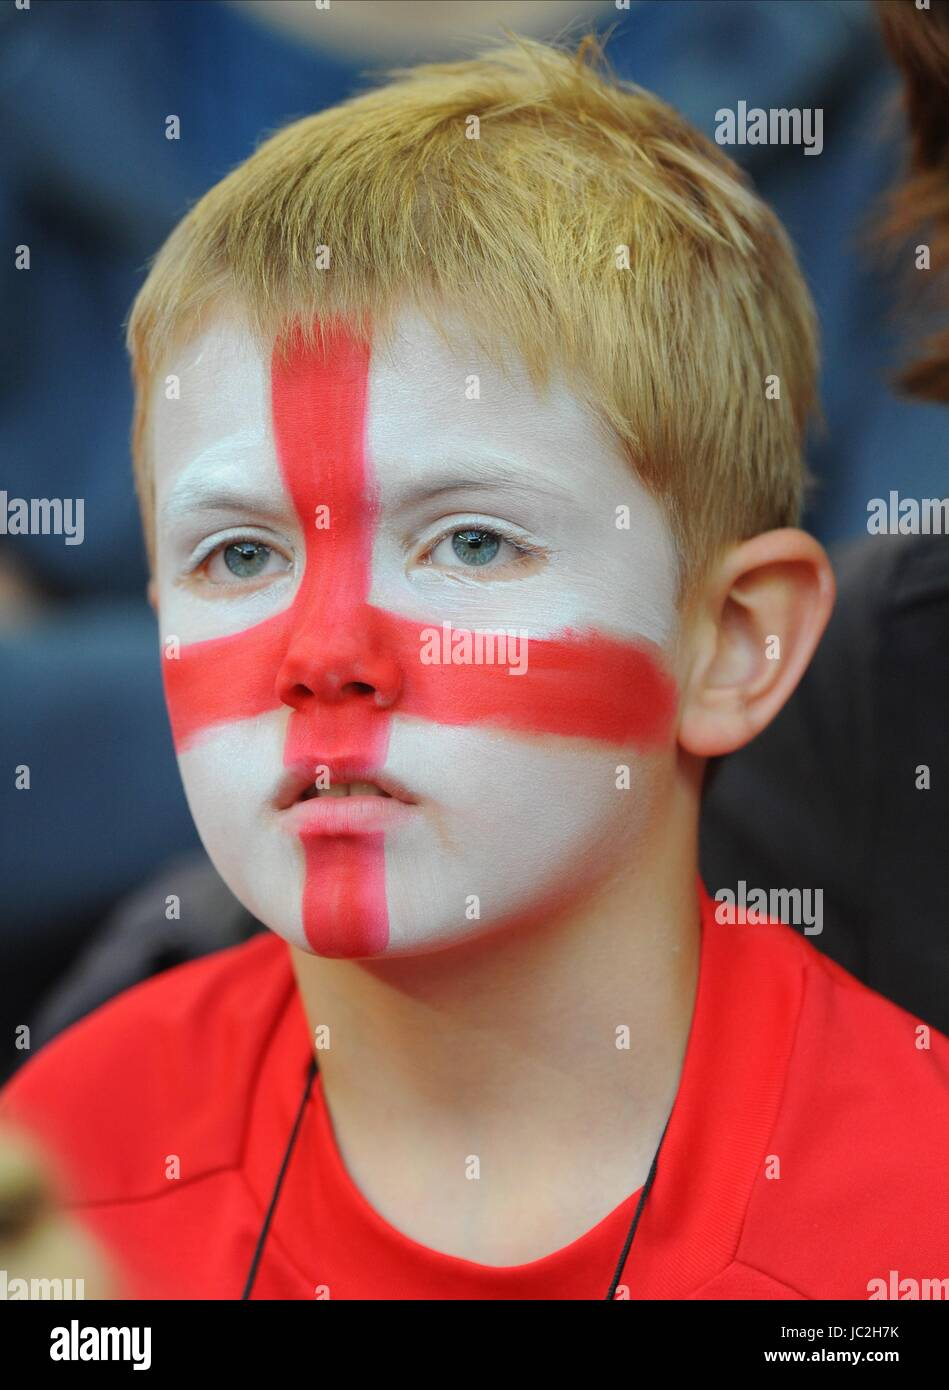 A YOUNG ENGLAND FAN WITH A PAI ENGLAND V HUNGARY WEMBLEY STADIUM LONDON ENGLAND 11 August 2010 - Stock Image